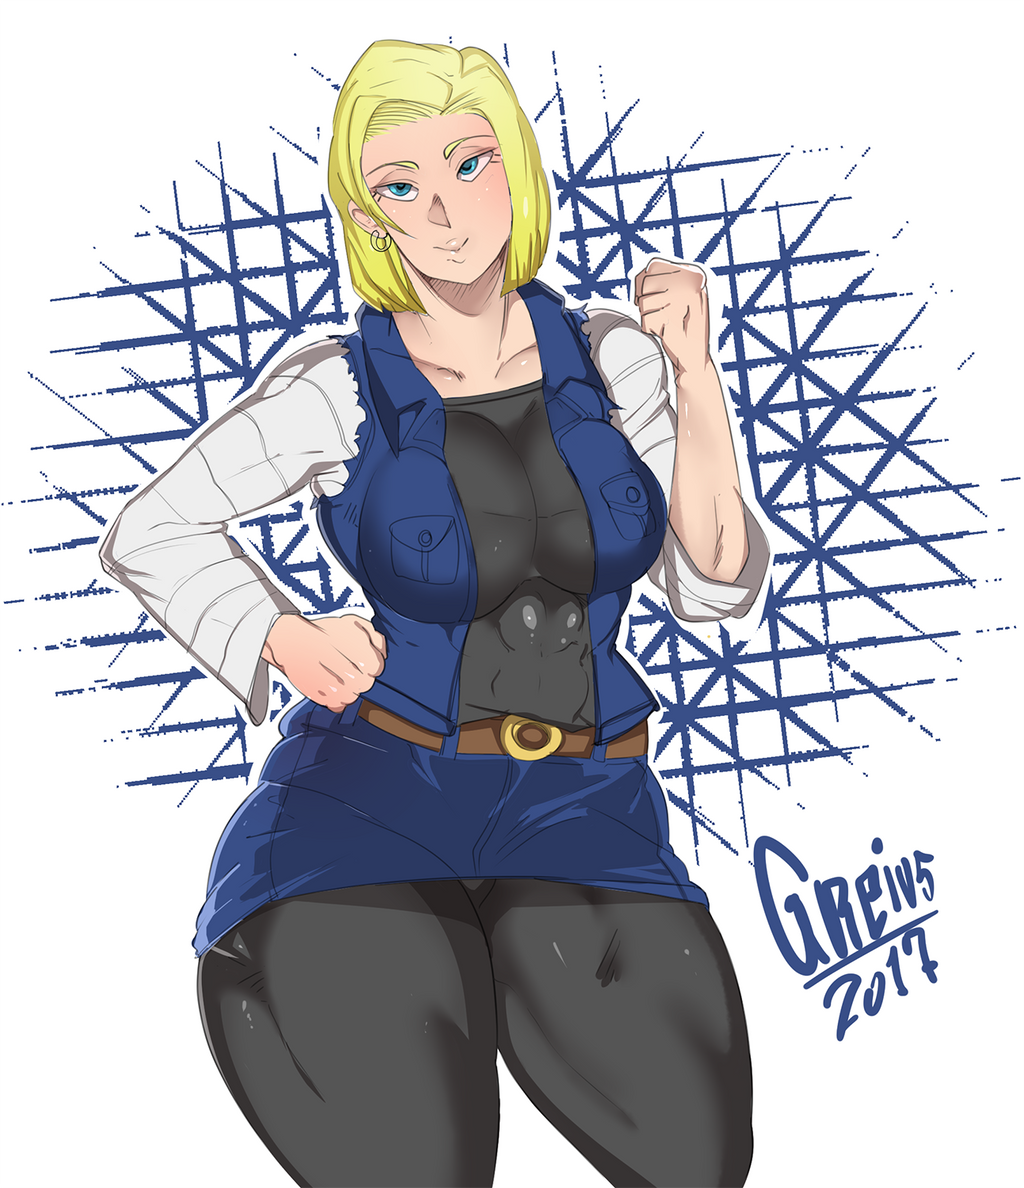 Android 18 And Tail Deviantart: Android 18. (DRAGON BALL FANART) By Greivs-GM On DeviantArt